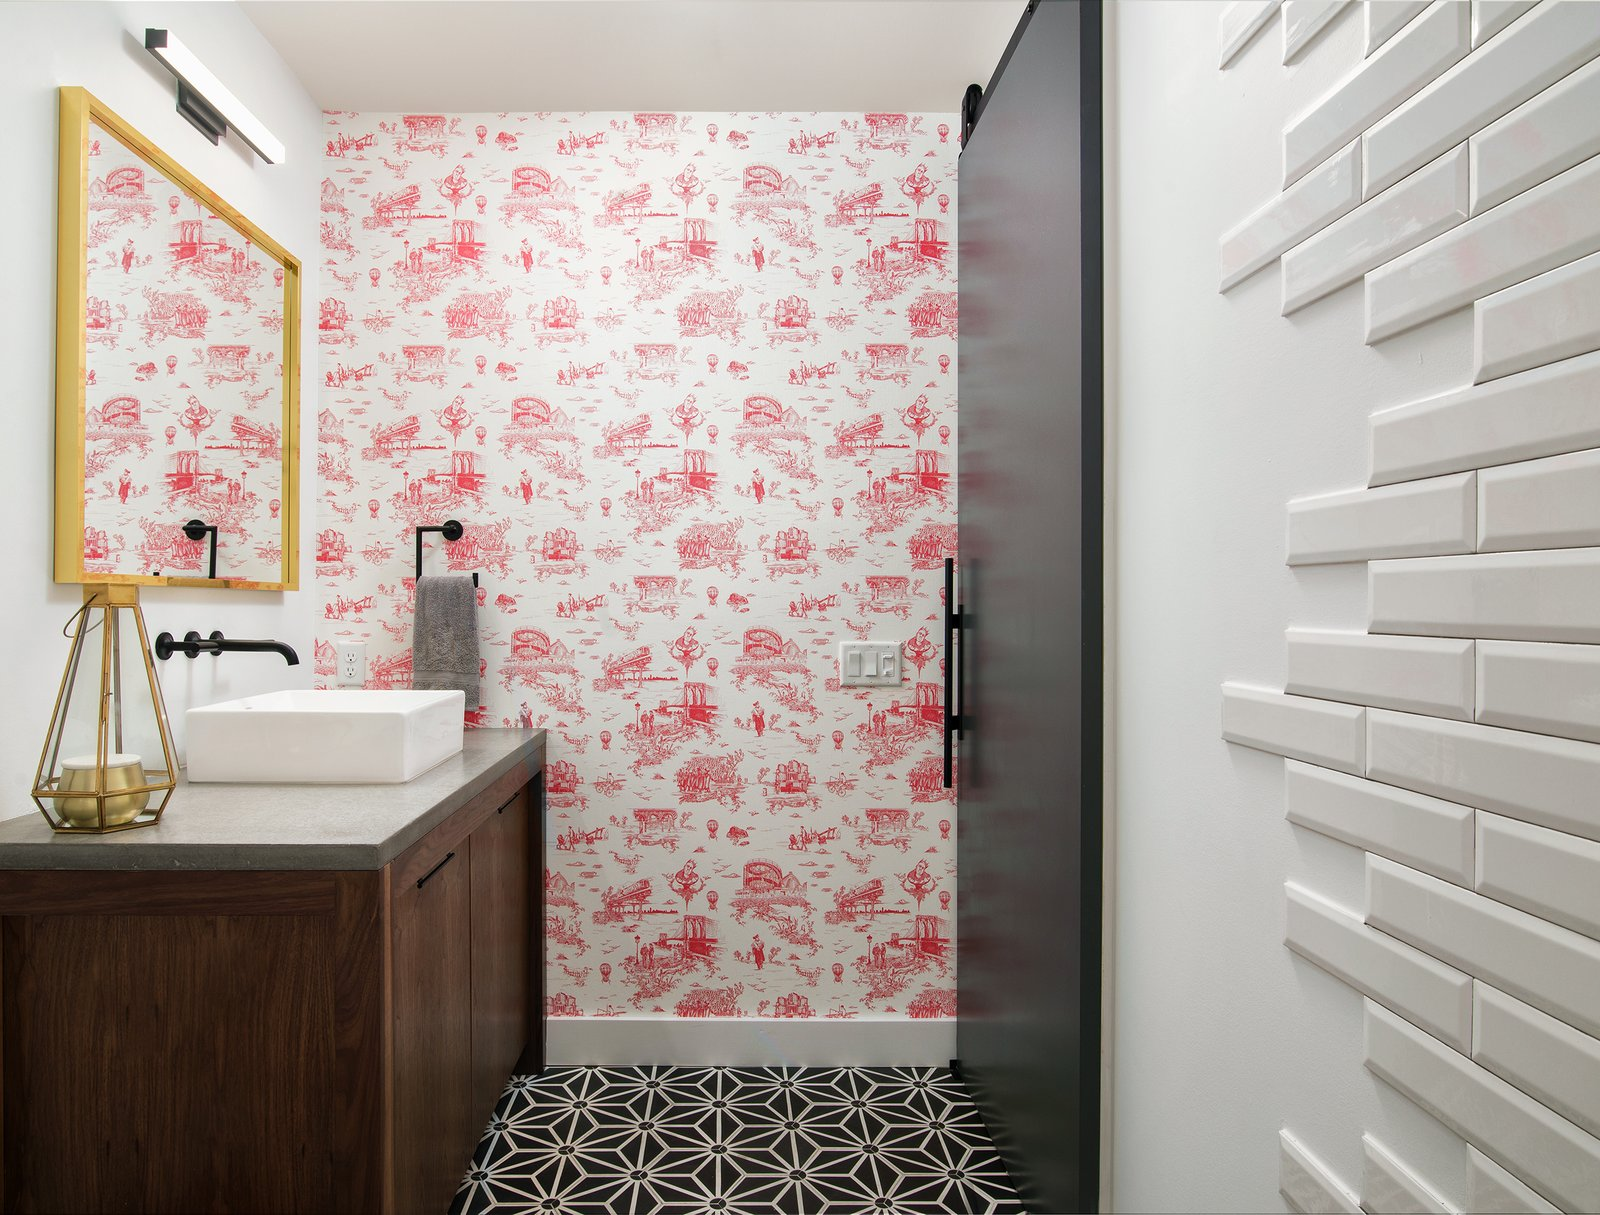 Bath Room, Ceramic Tile Wall, Ceiling Lighting, Vessel Sink, Concrete Counter, Subway Tile Wall, Concrete Floor, and Wall Lighting Guest Bath Detail  400 SOLA